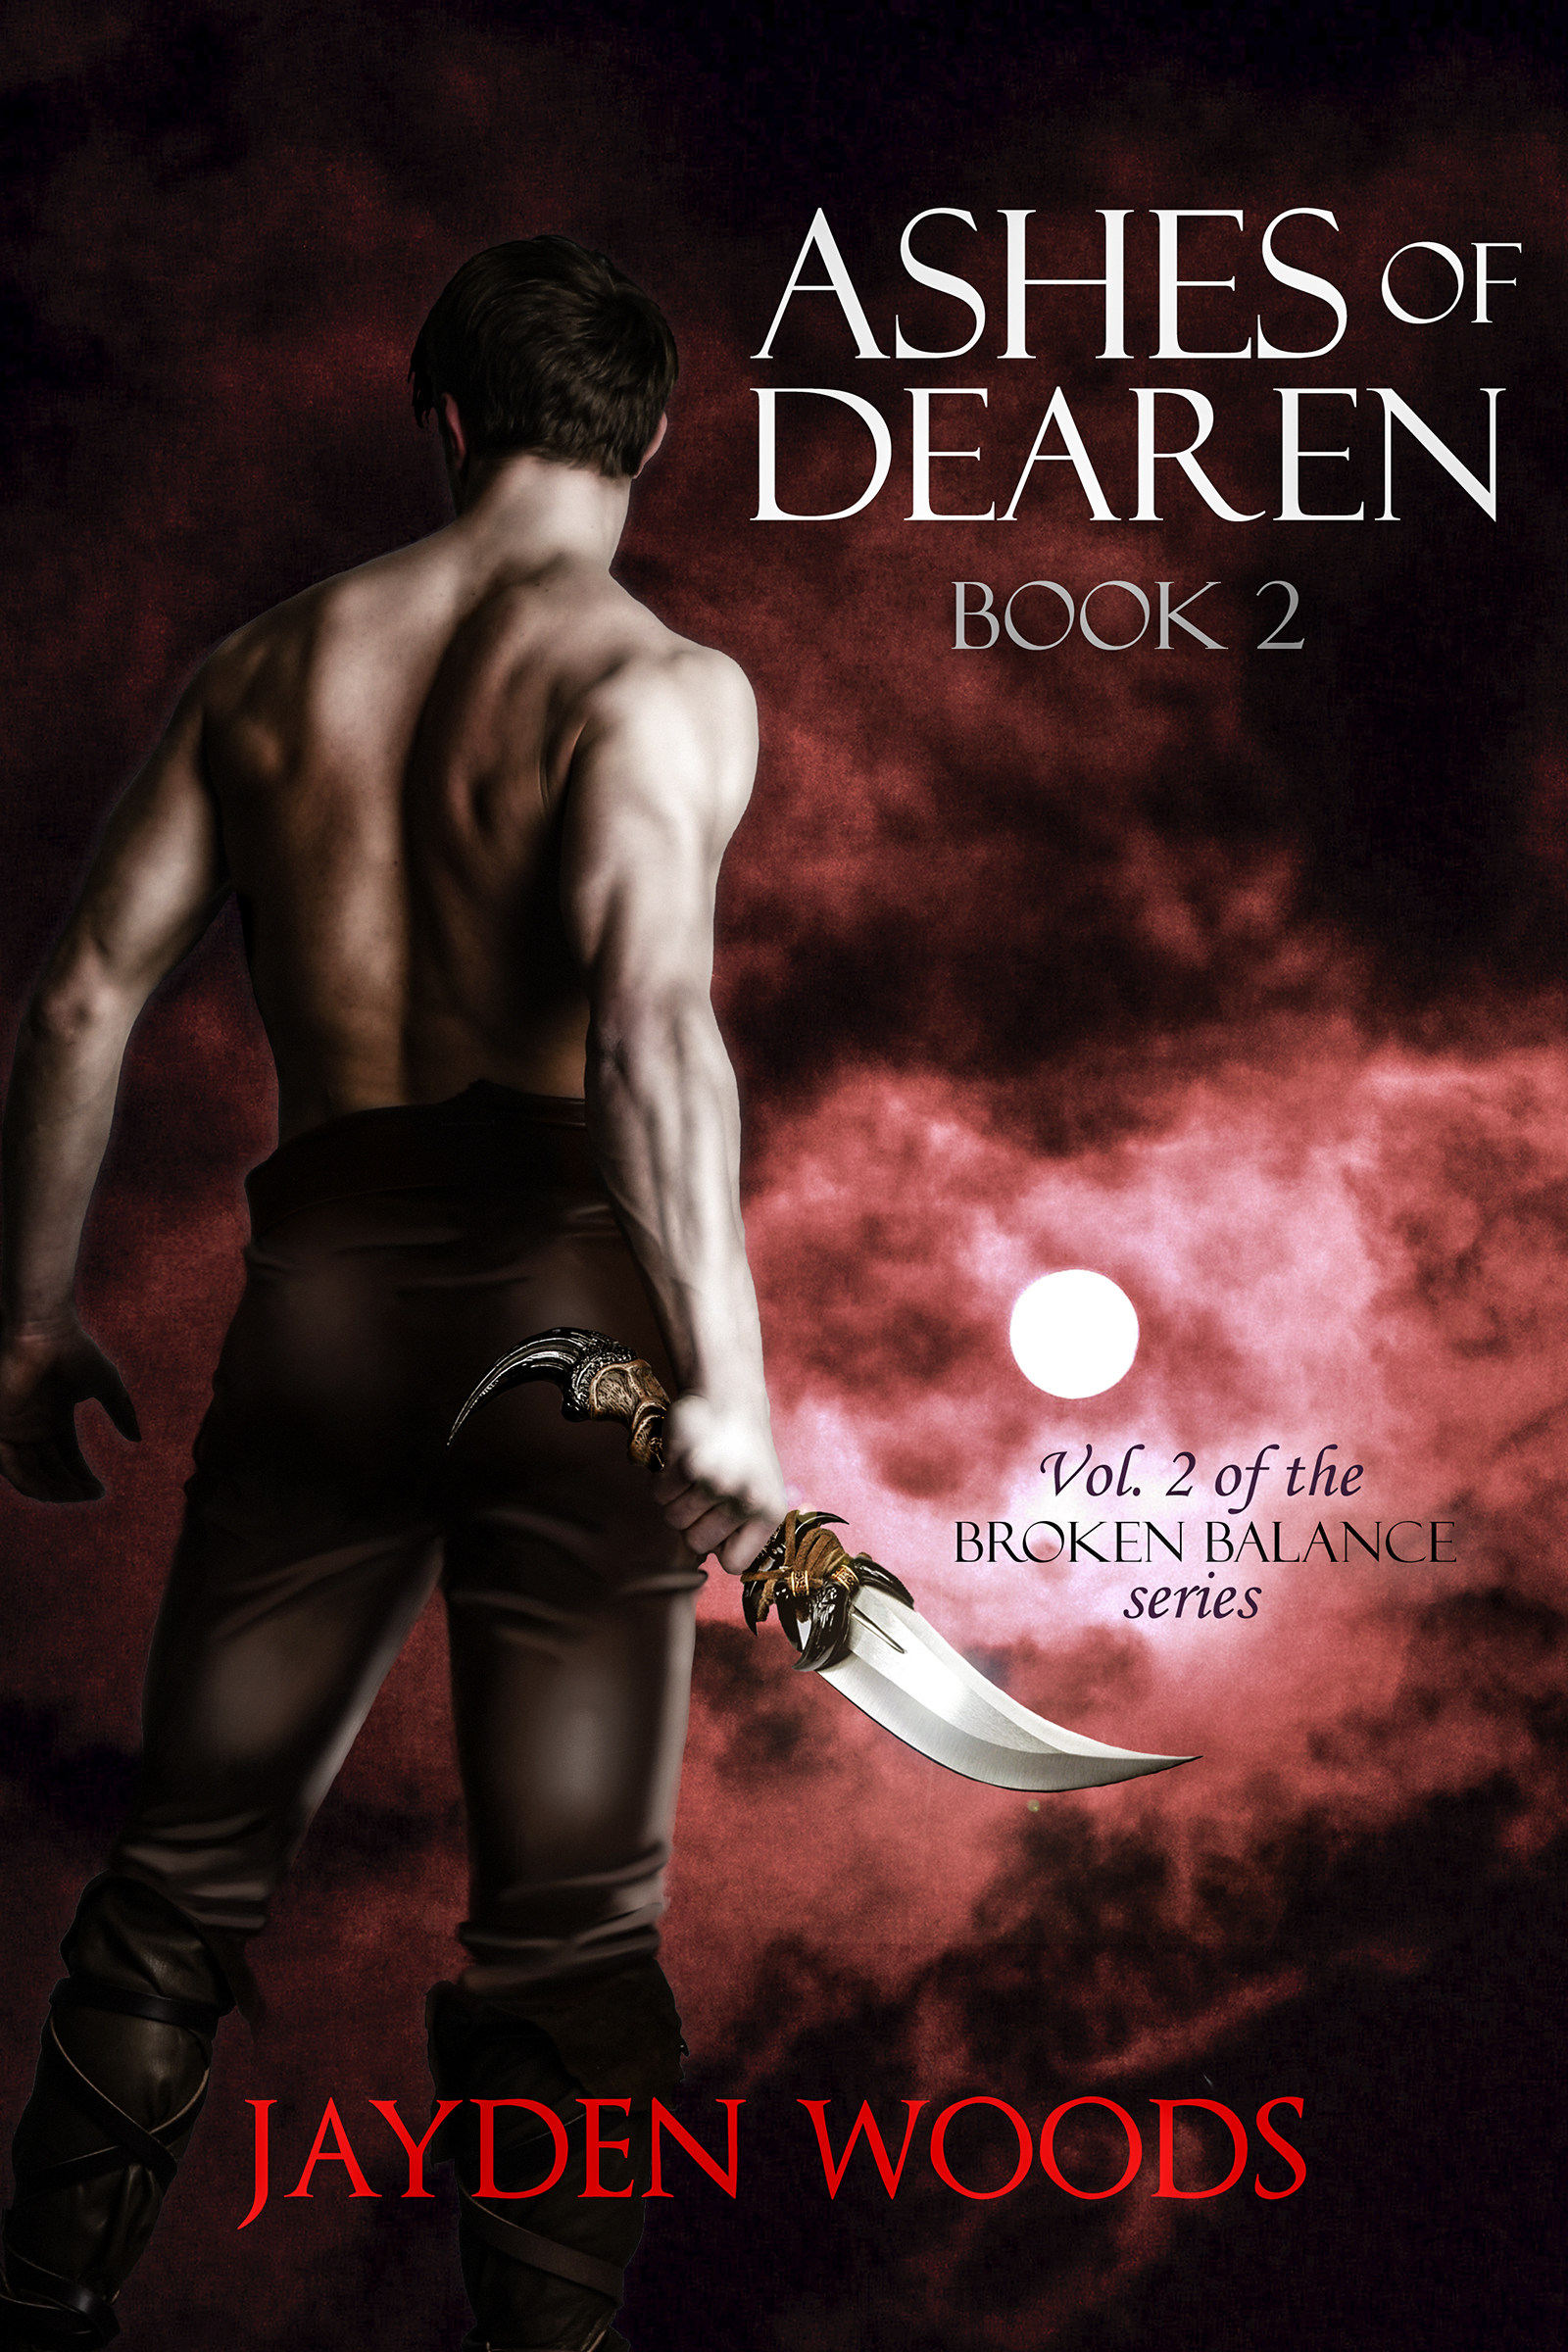 Ashes of Dearen: Book 2 By: Jayden Woods